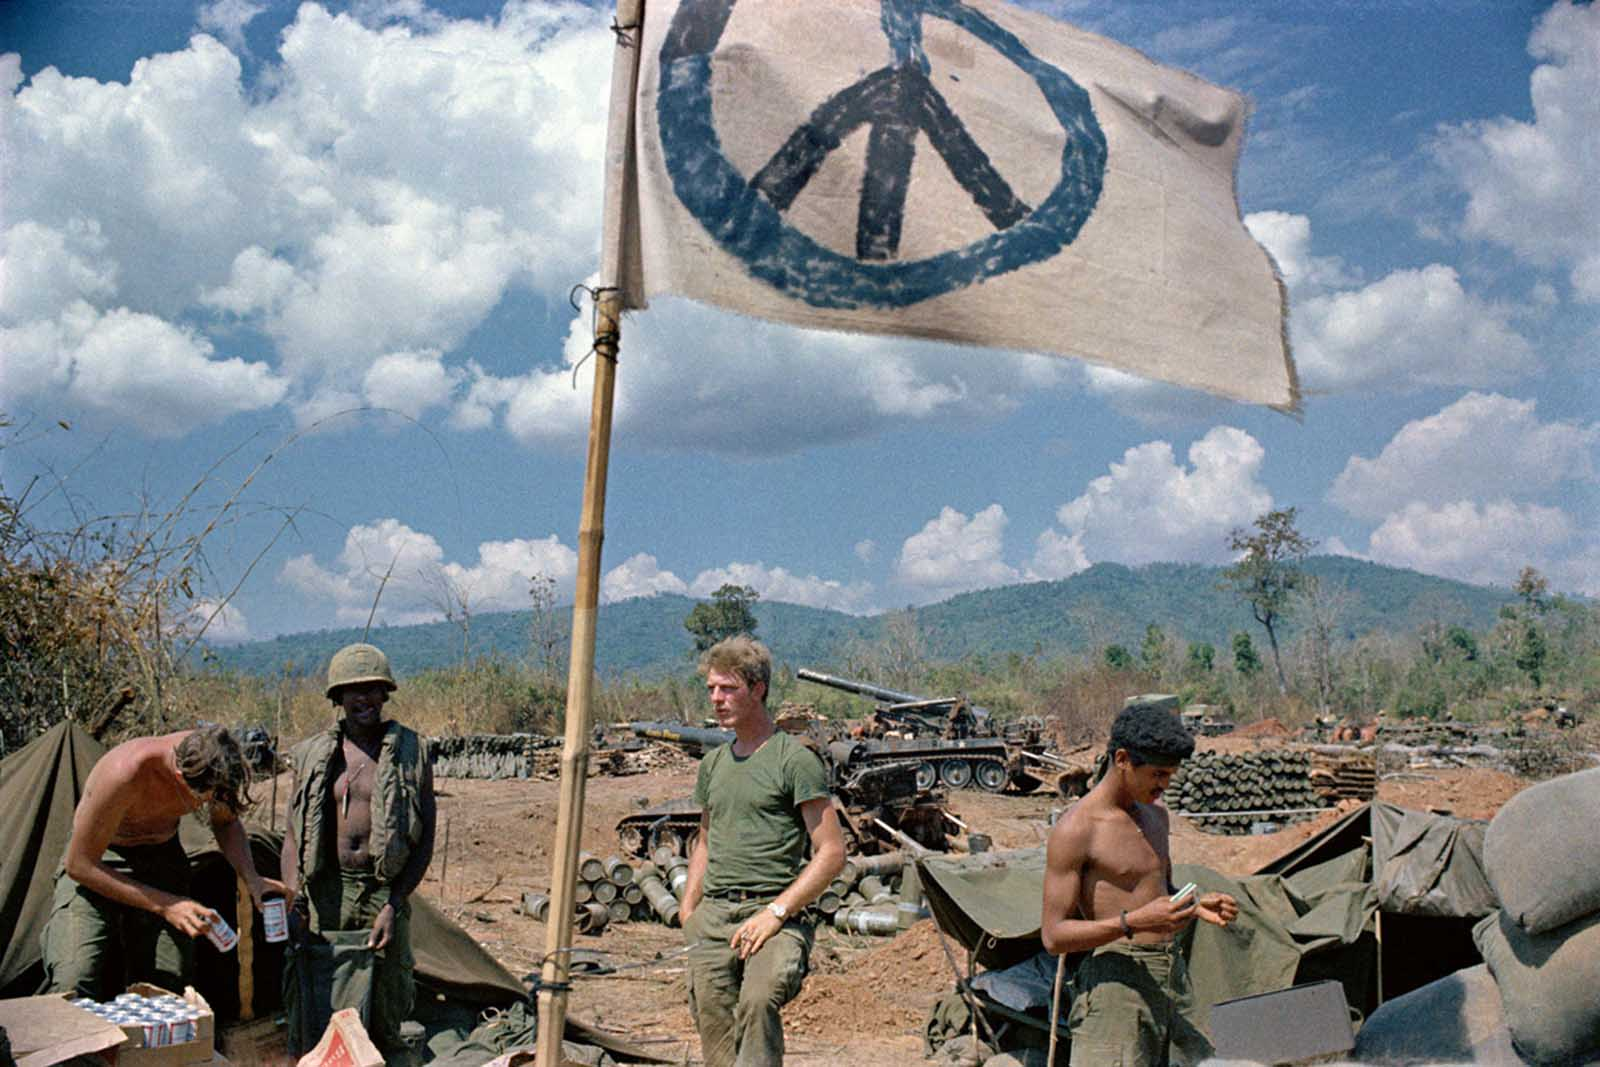 U.S. artillerymen relax under a crudely made peace flag at the Laotian border in 1971. The gunners were giving covering fire for South Vietnamese troops operating inside Laos.